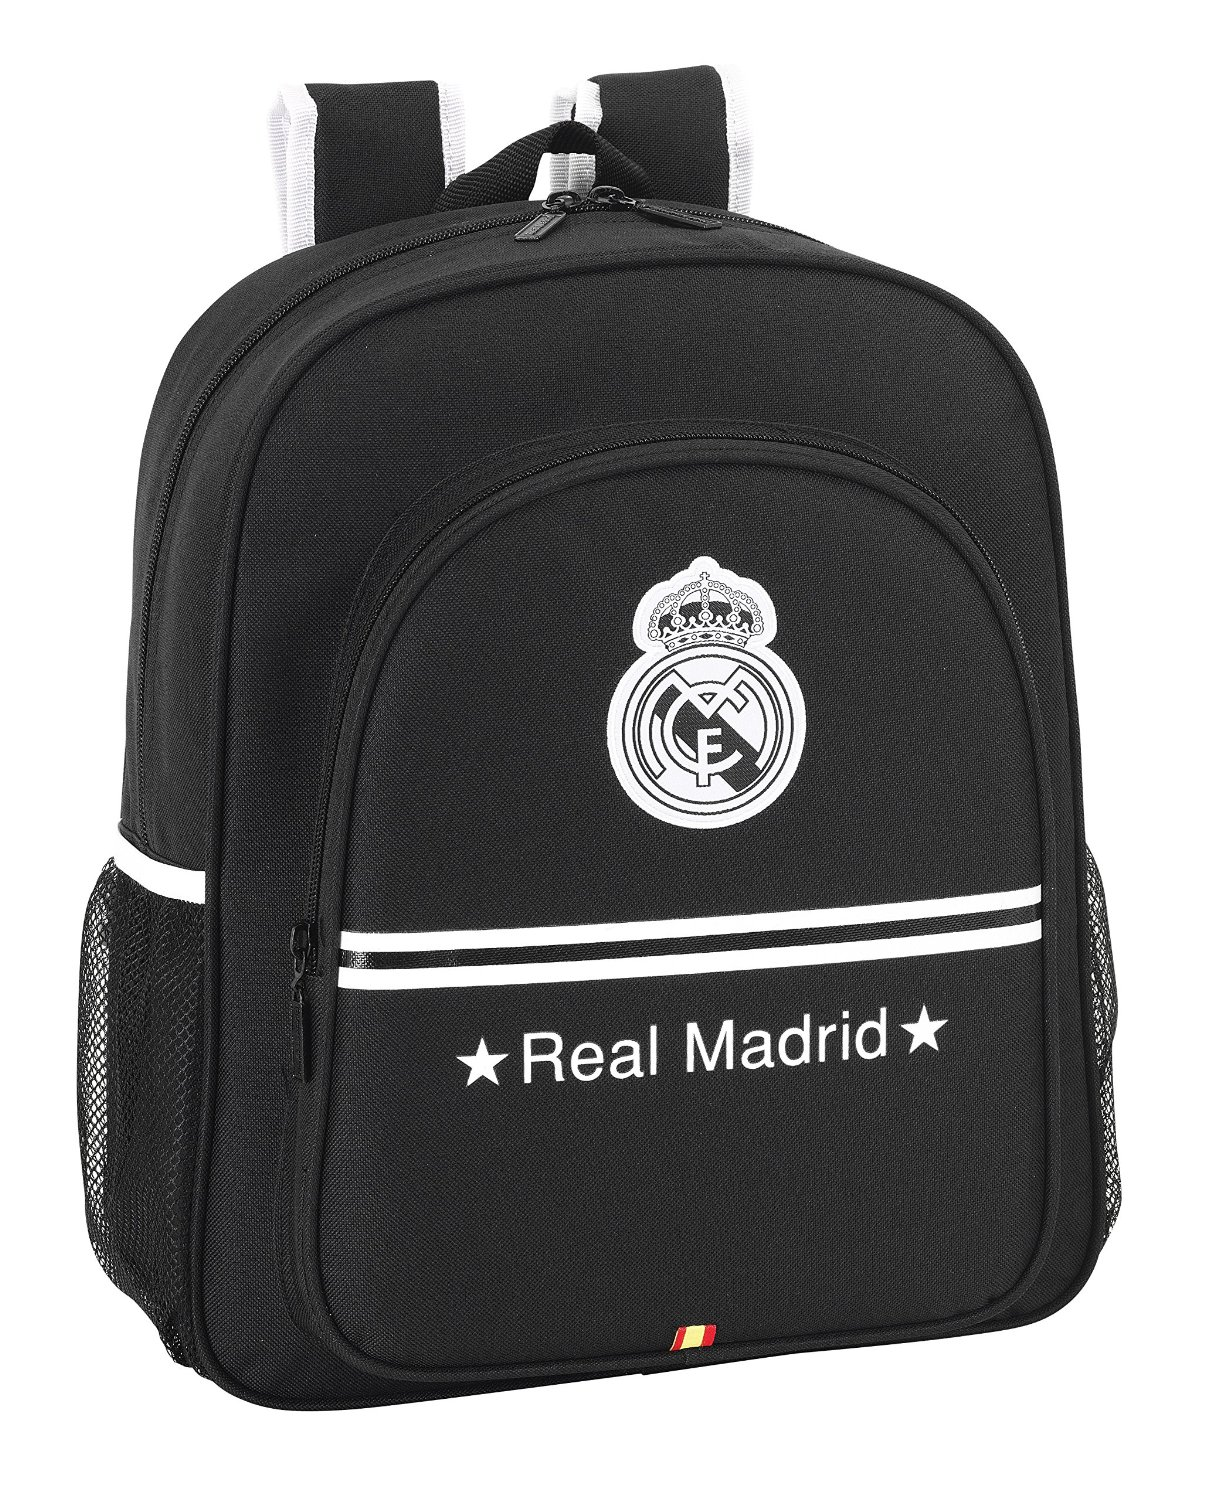 OFERTA Mochila junior adaptable Real Madrid Negro